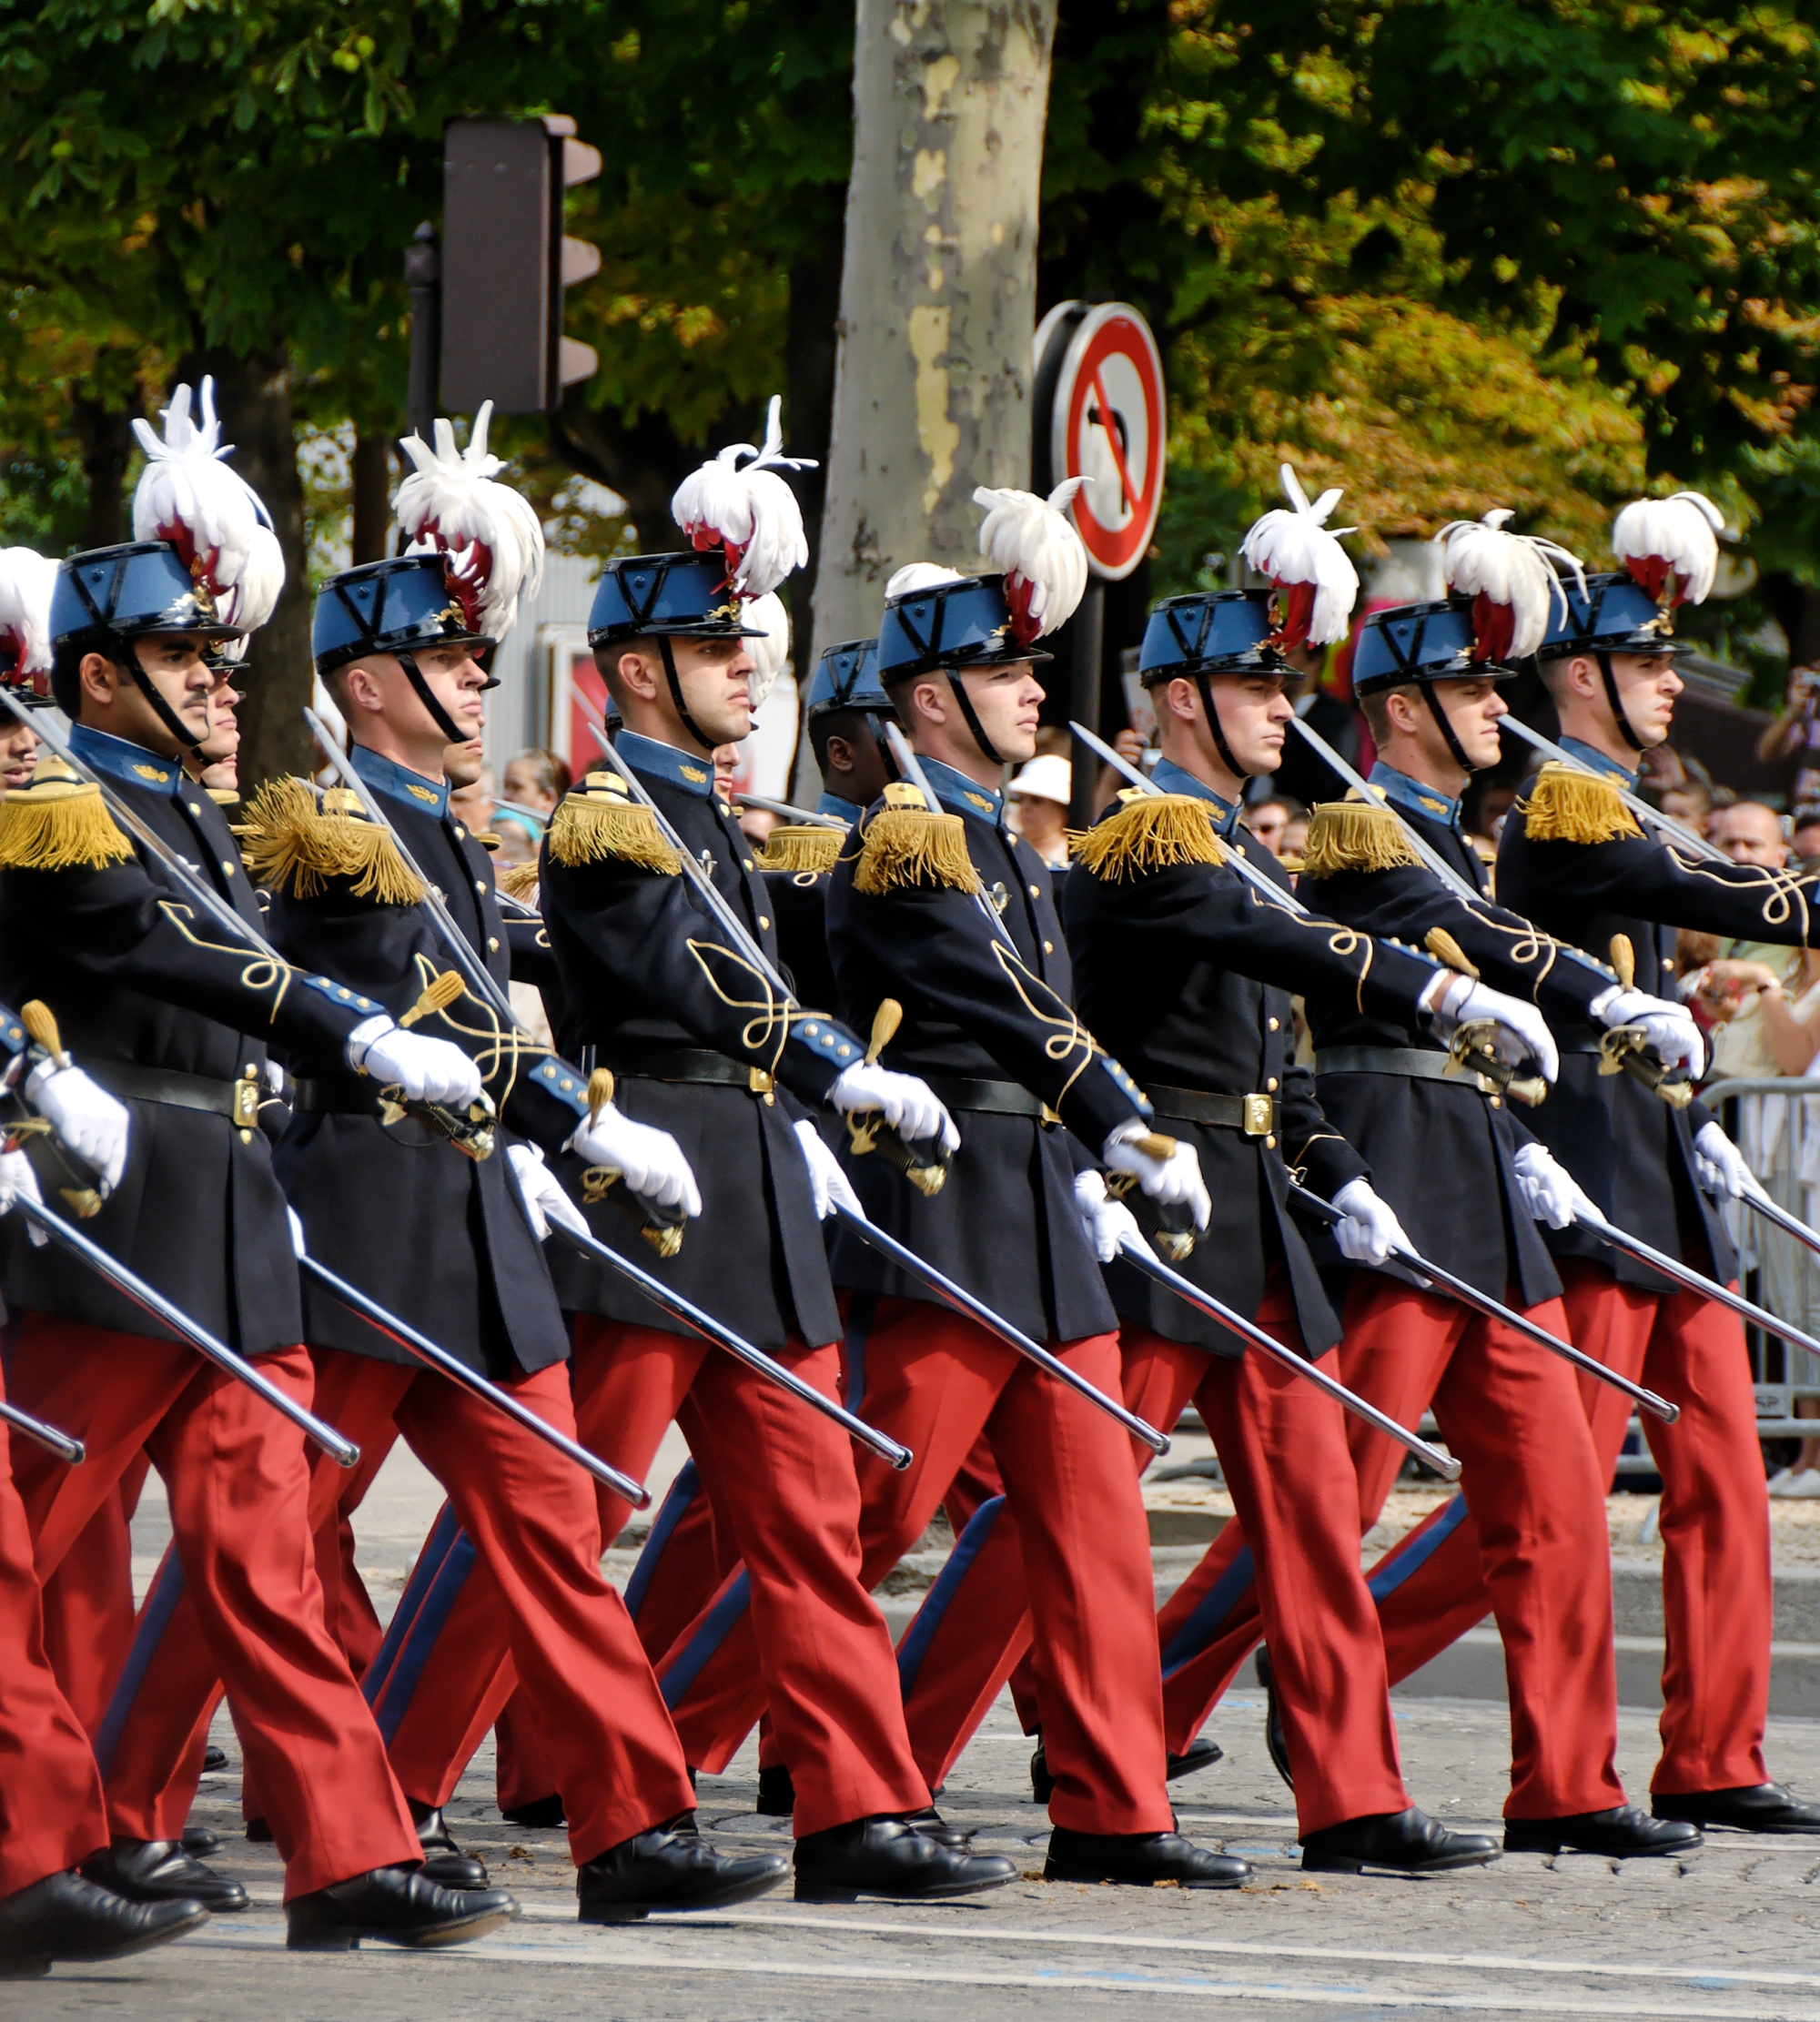 A battalion of the Saint-Cyr-Coëtquidan military academy